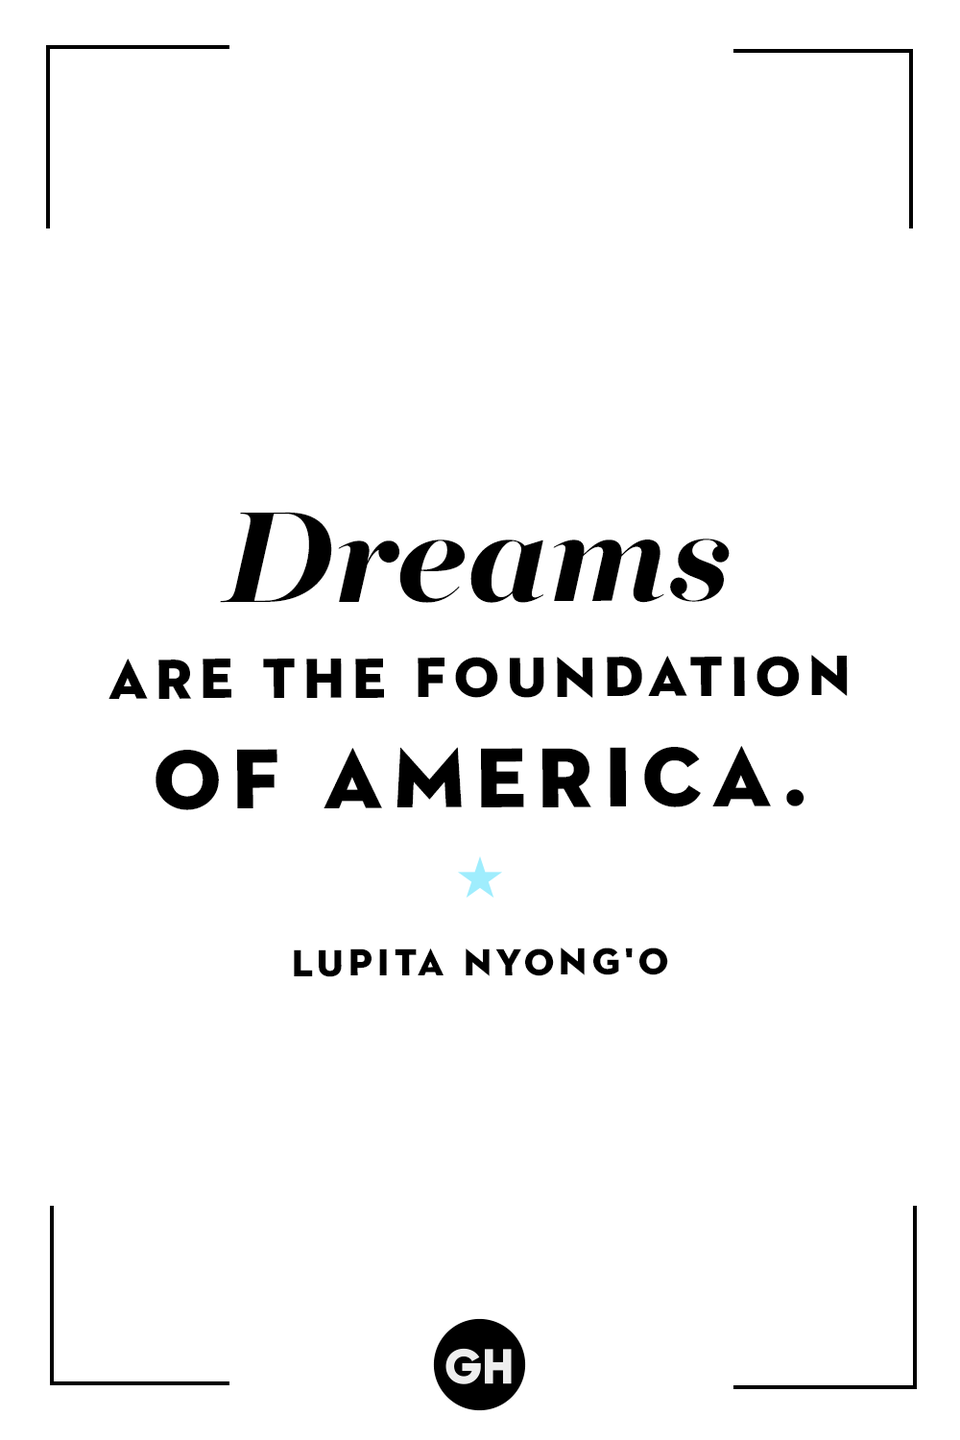 <p>Dreams are the foundation of America.</p>